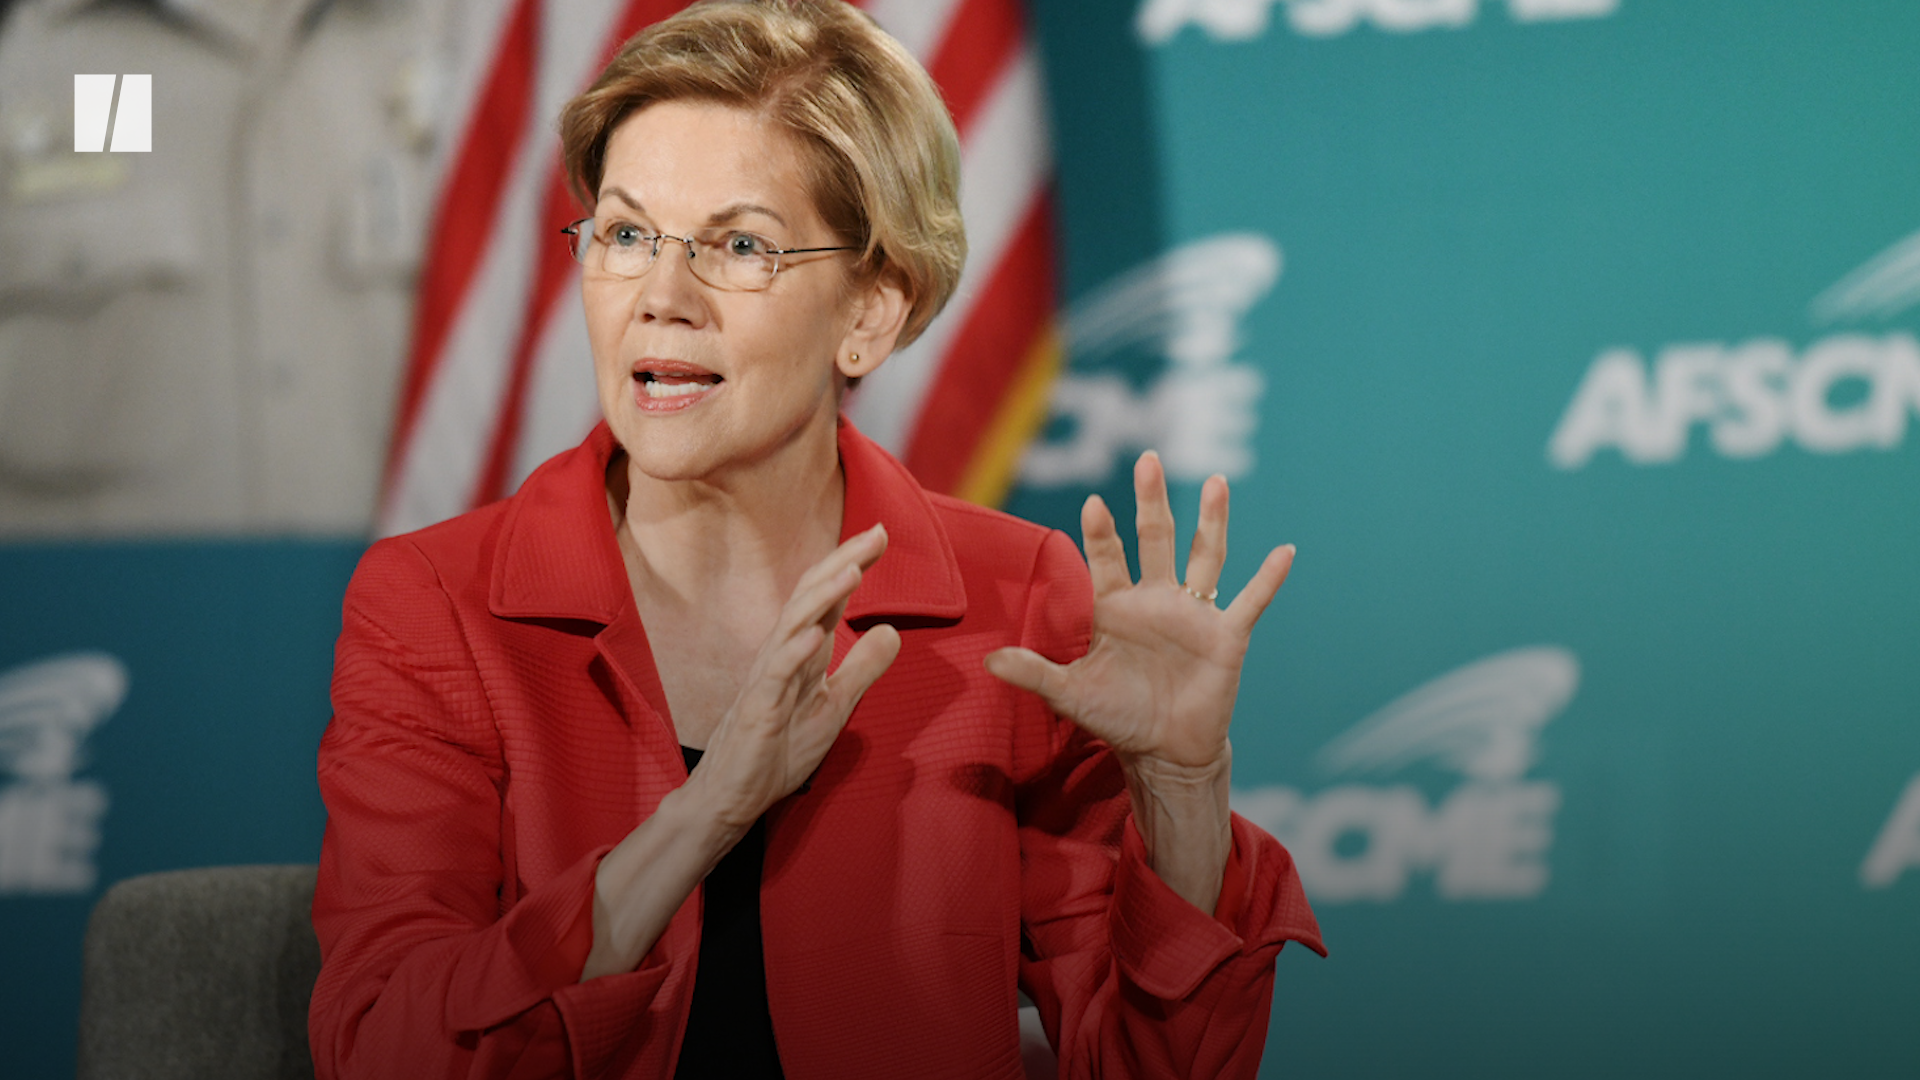 Elizabeth Warren Vows To Fight For LGBTQ Equality In Surprise DragCon Video